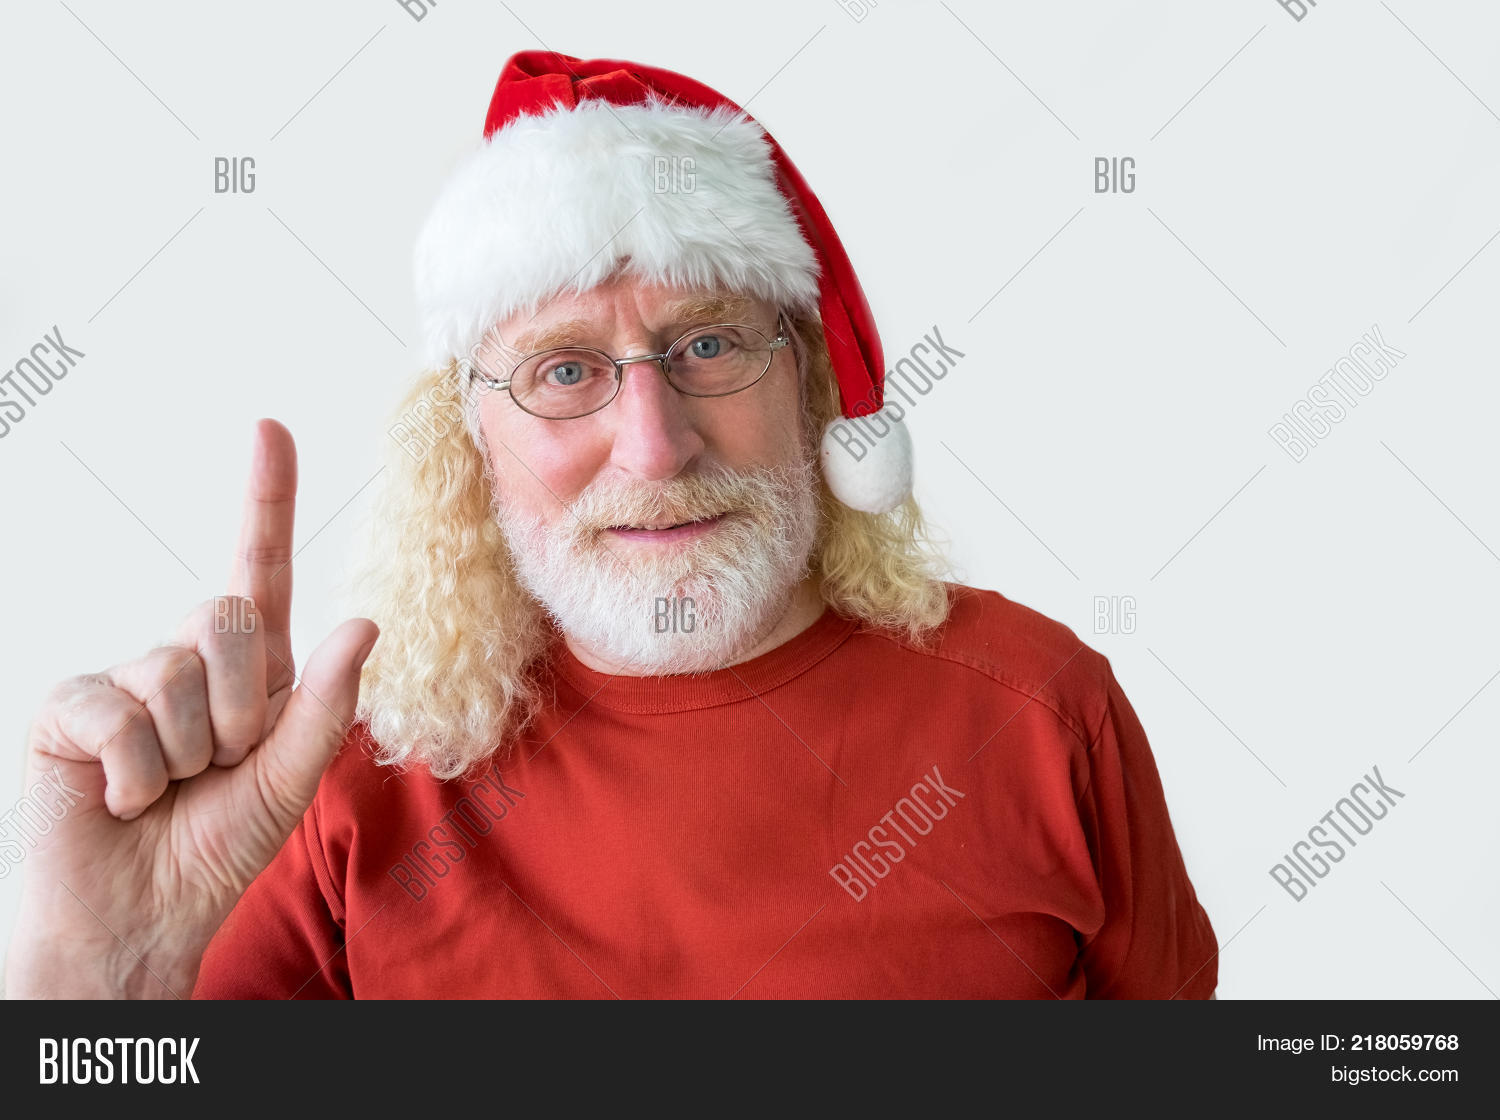 f09f8d1ba37 Studio shot of senior man in Christmas hat. Aged positive man raising  finger and looking